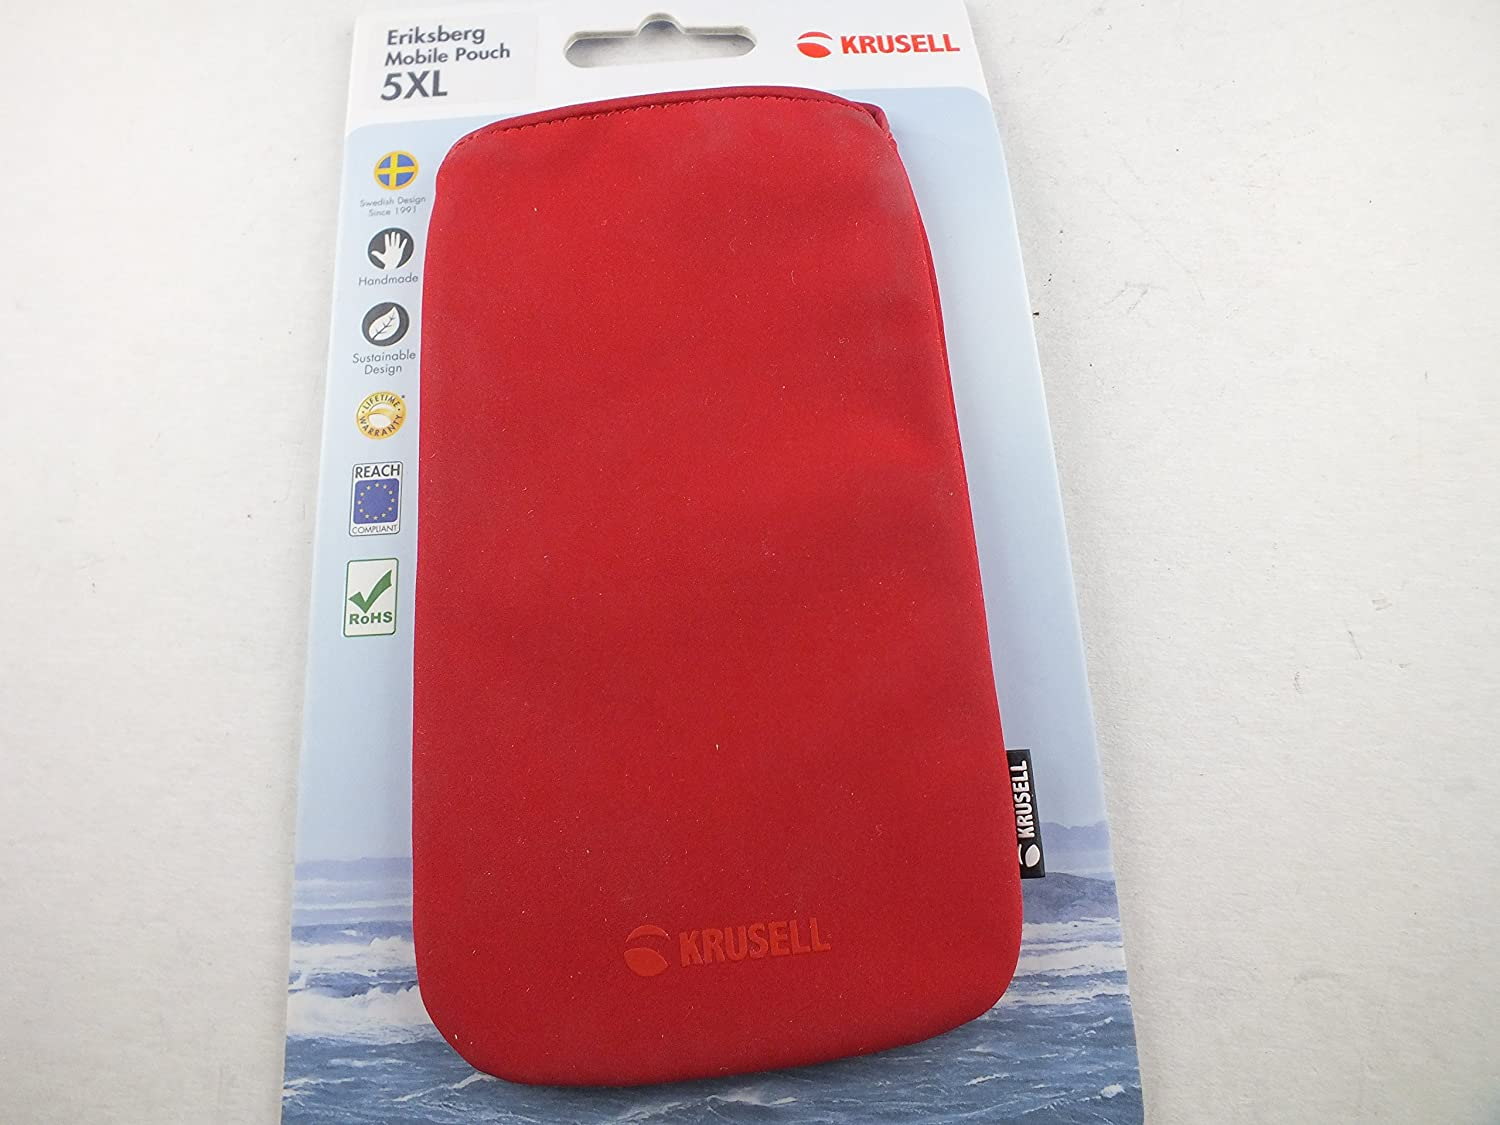 Krusell Eriksberg Mobile Pouch for 5XL, Rot Red: Amazon